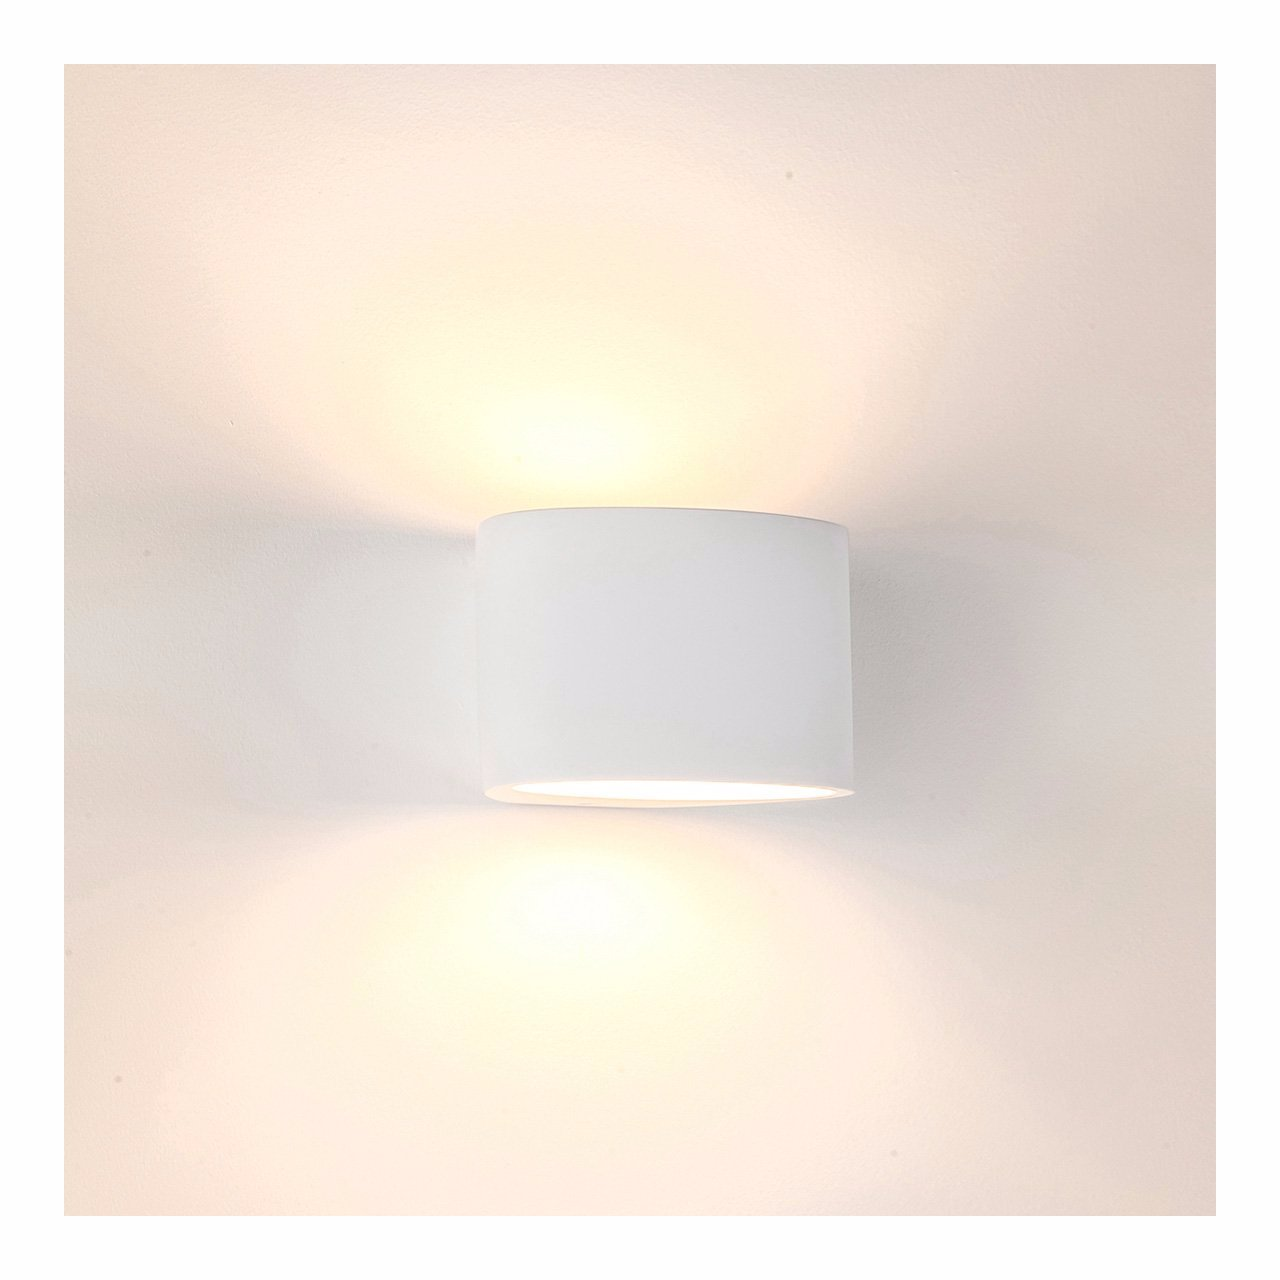 Indoor wall lights havit lighting hv8025 arc small led wall plaster light aloadofball Gallery